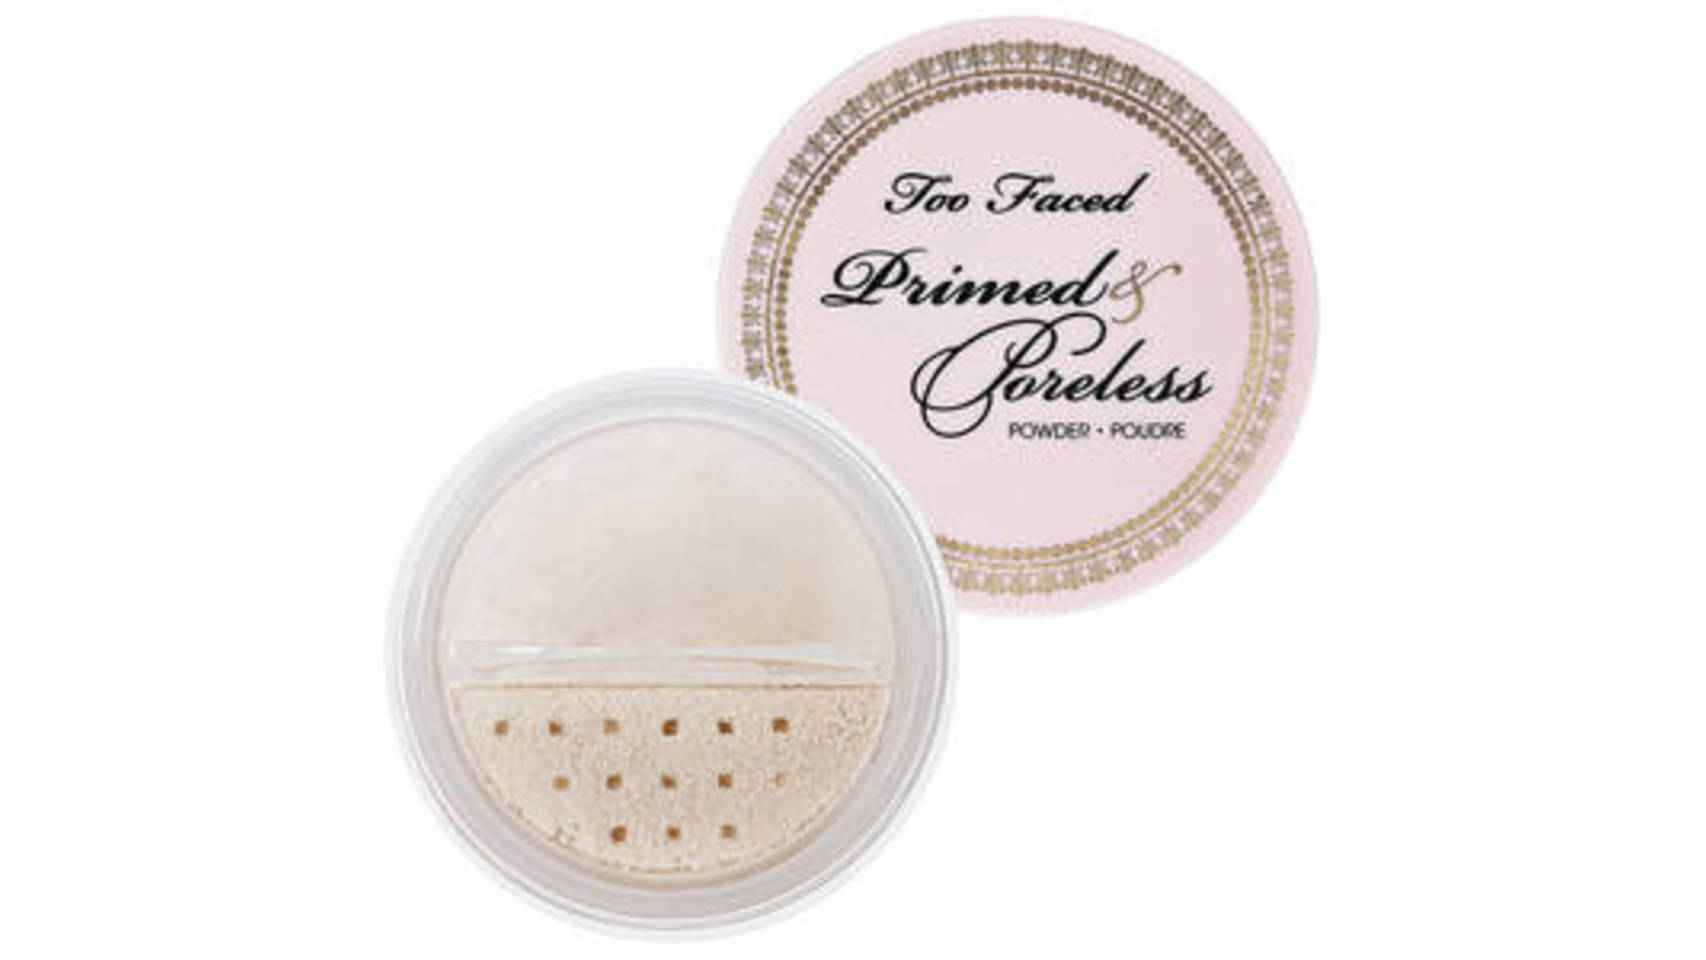 Polvos sueltos translúcidos Primed & Poreless de Too Faced, 29,50€.